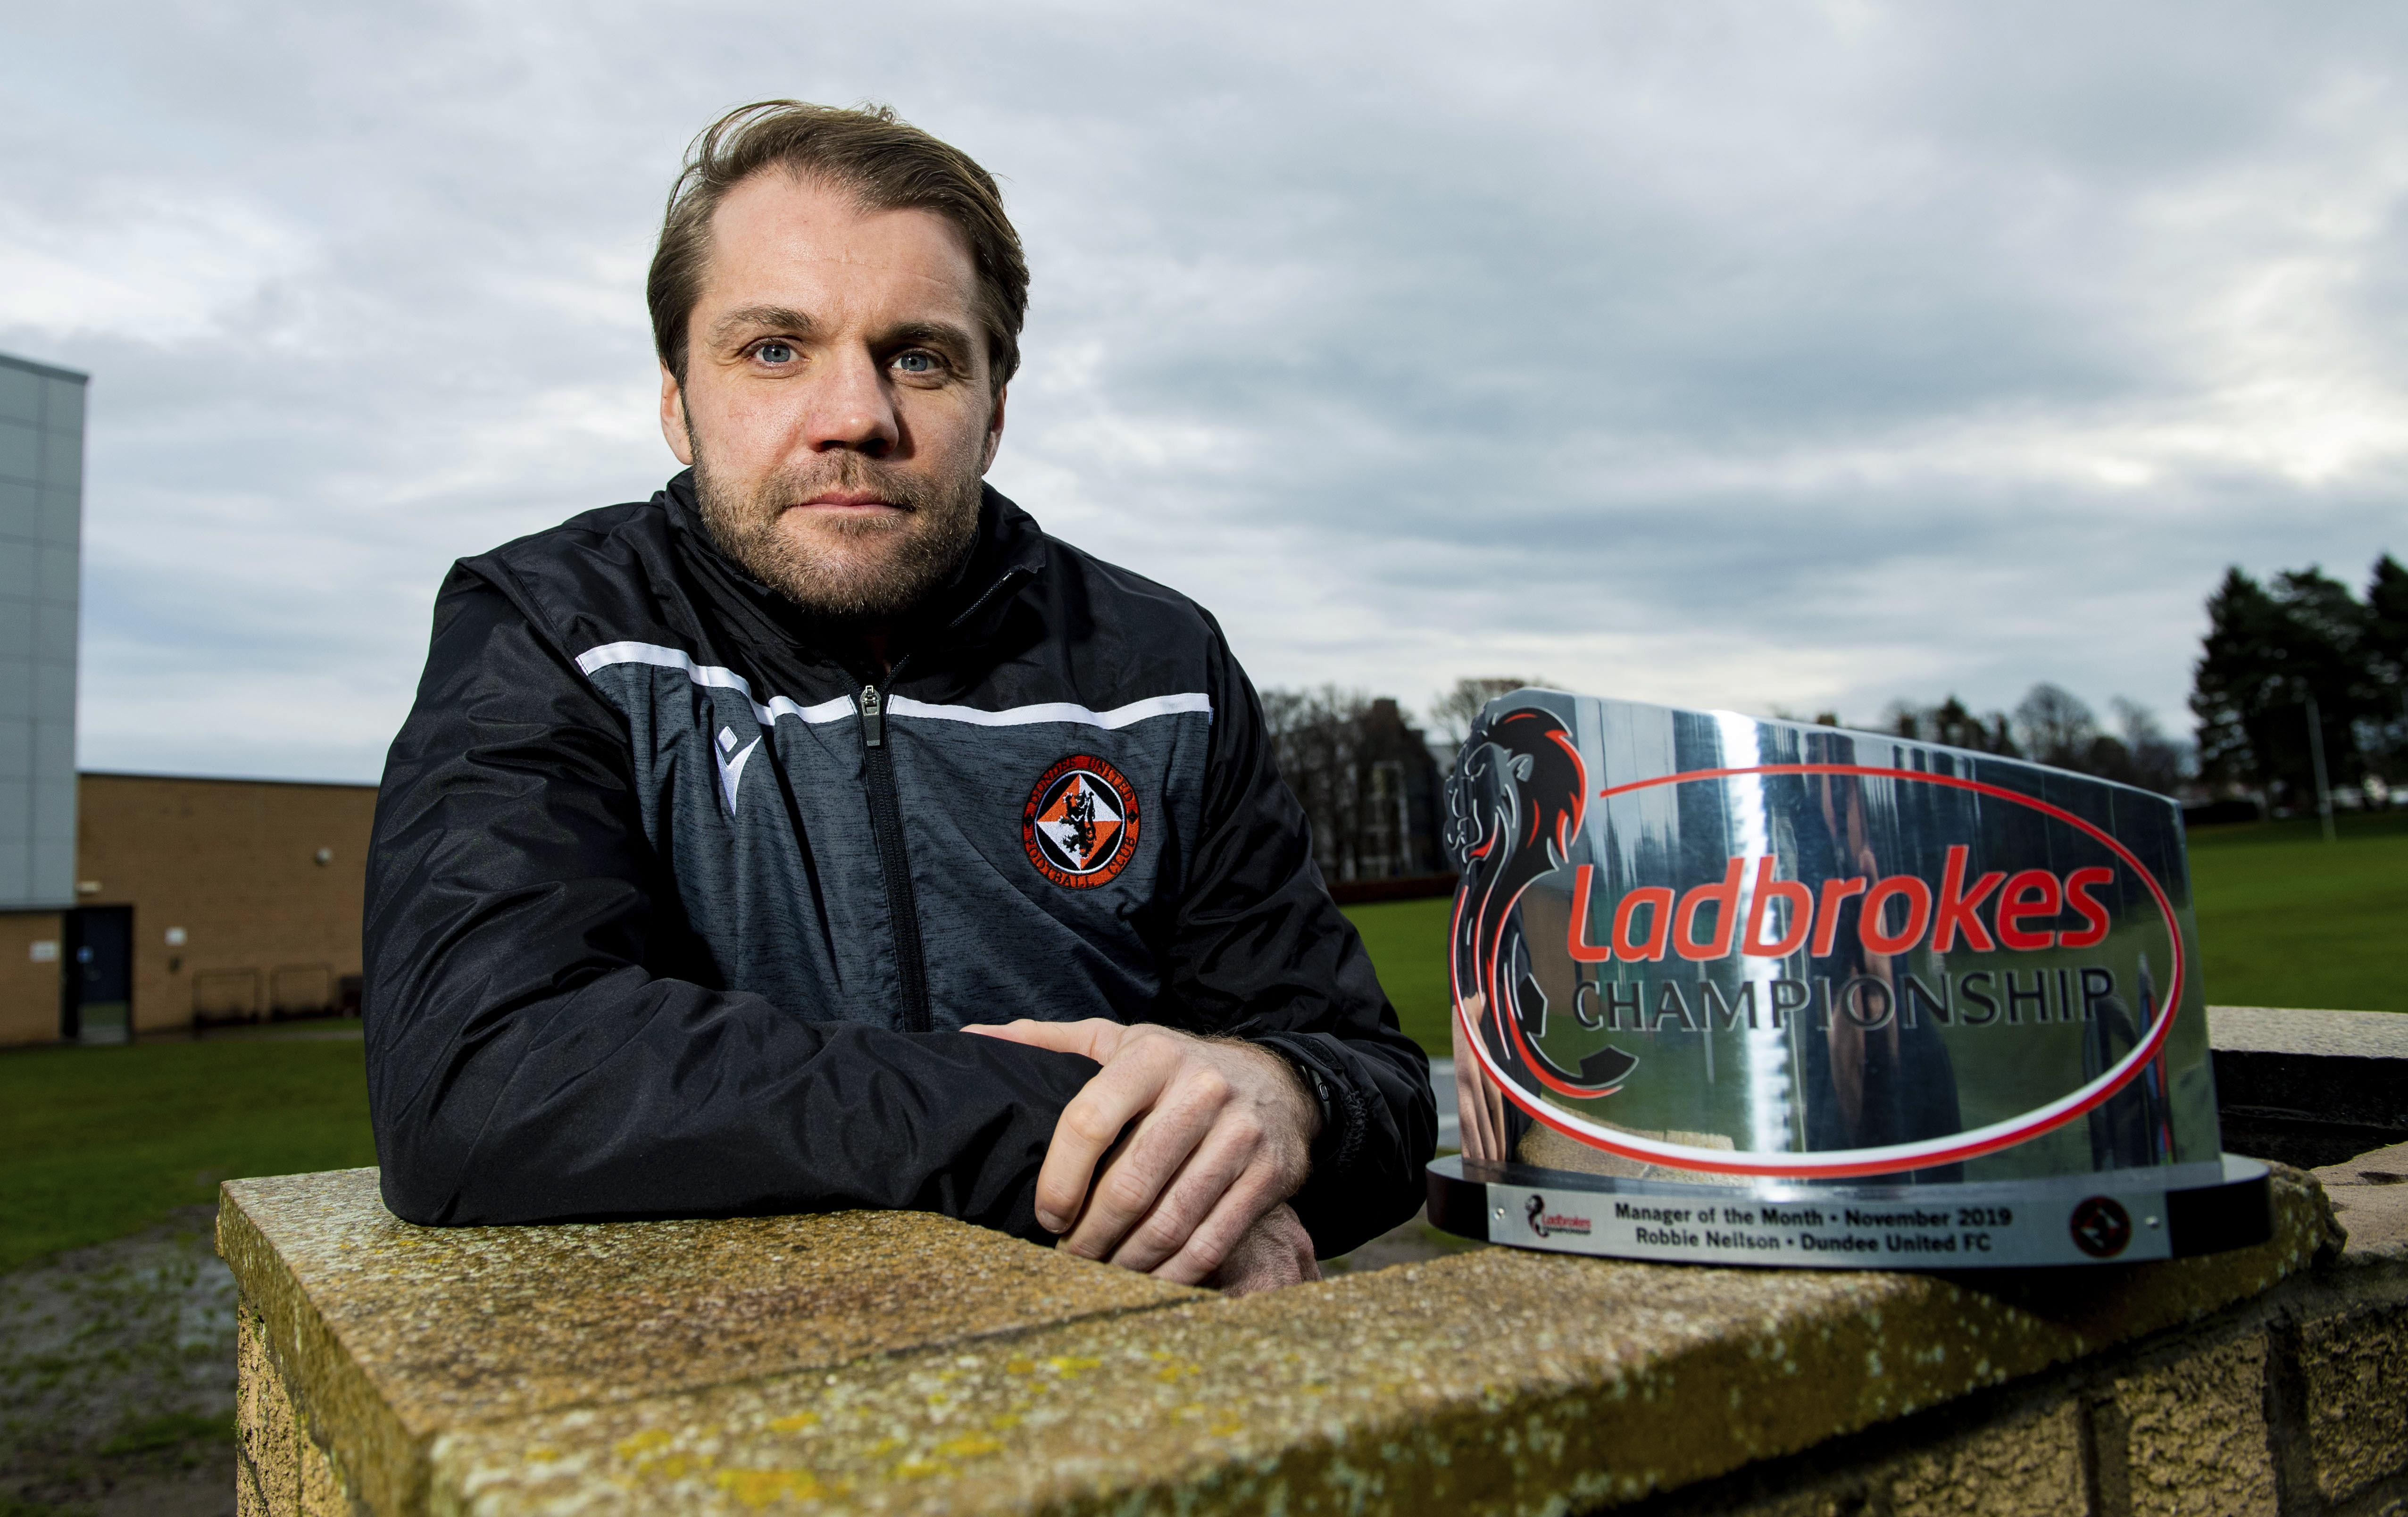 Robbie Neilson's men have cruised in Championship this season